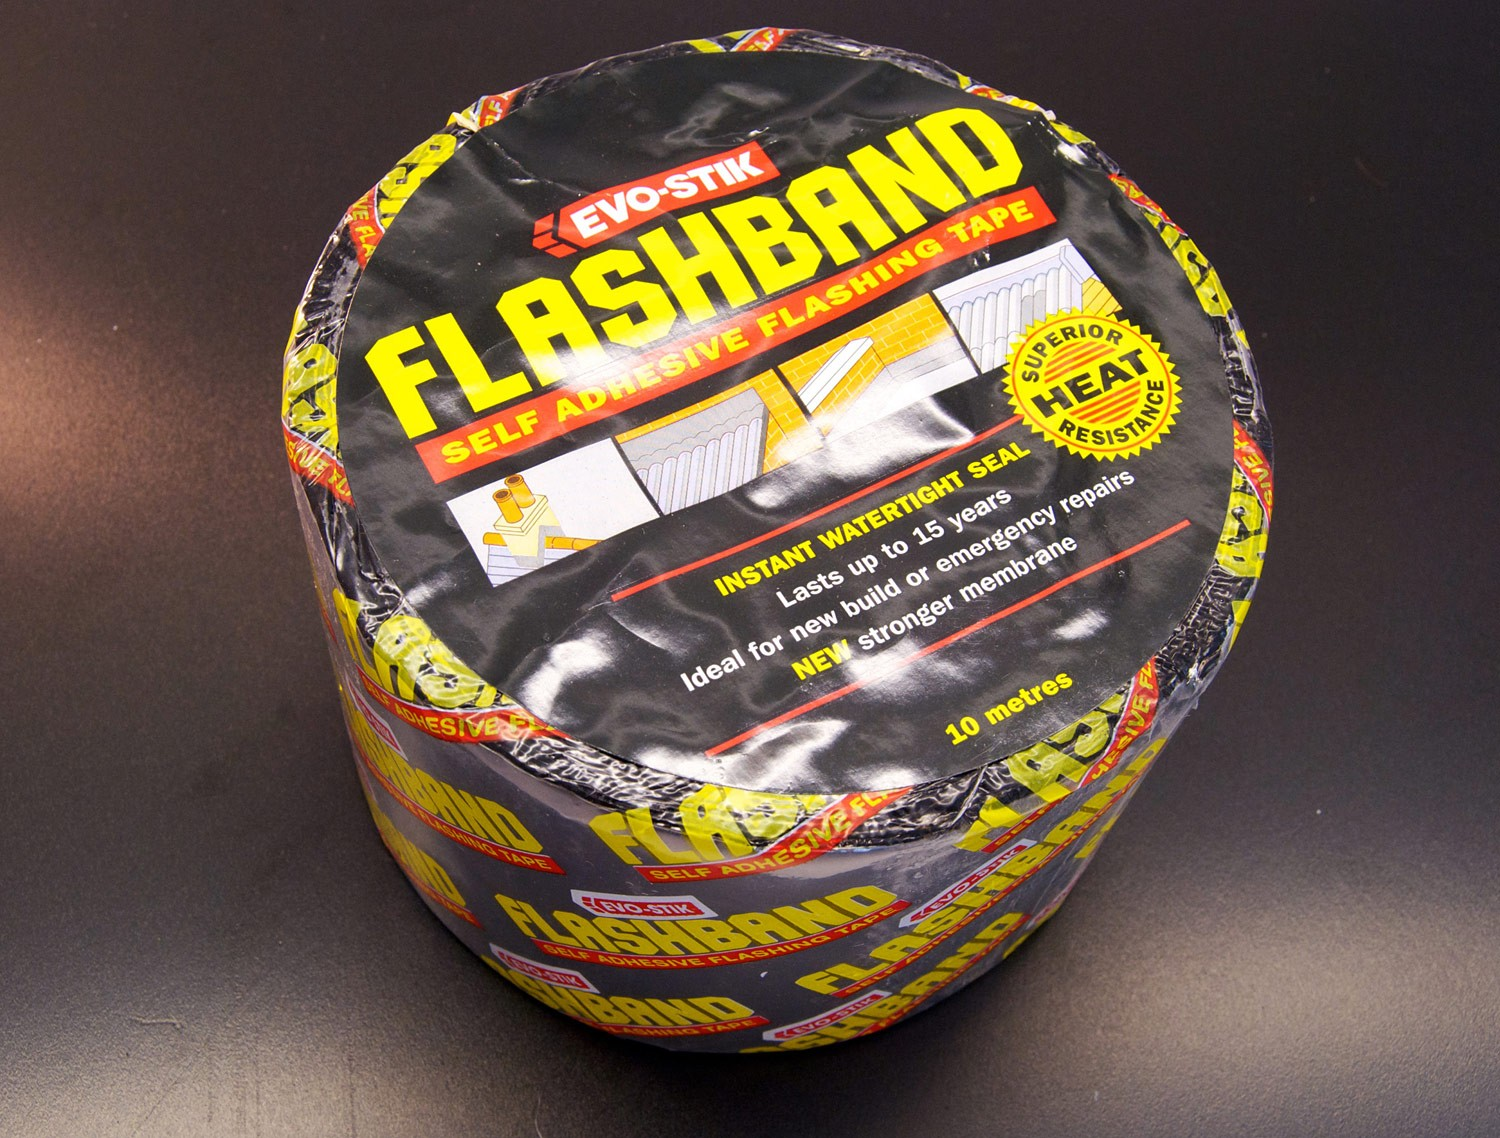 225mm Self Adhesive Flashband (Lead Colour) x 10m